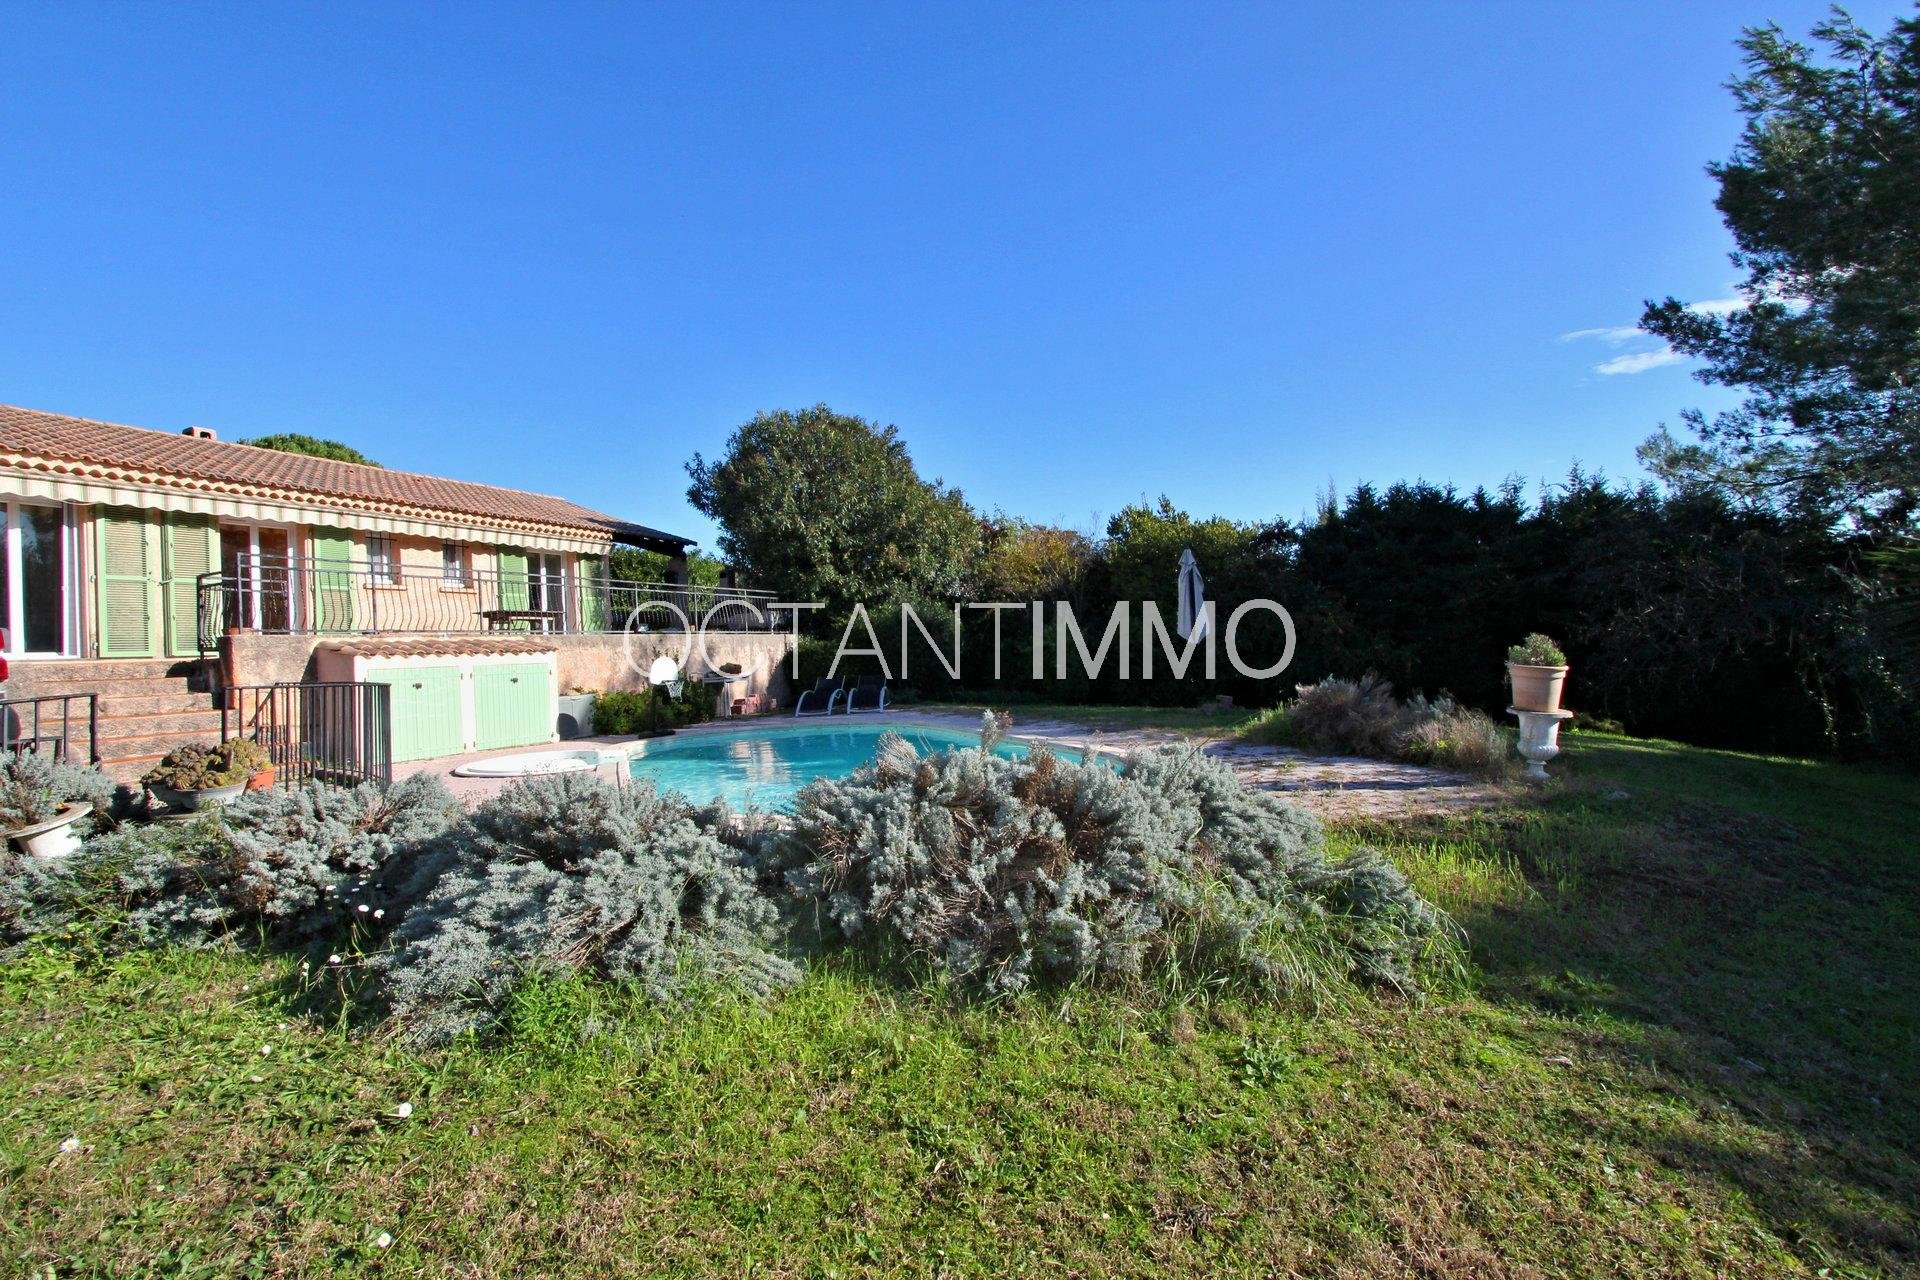 BIOT - One-storey house with 4 bedrooms